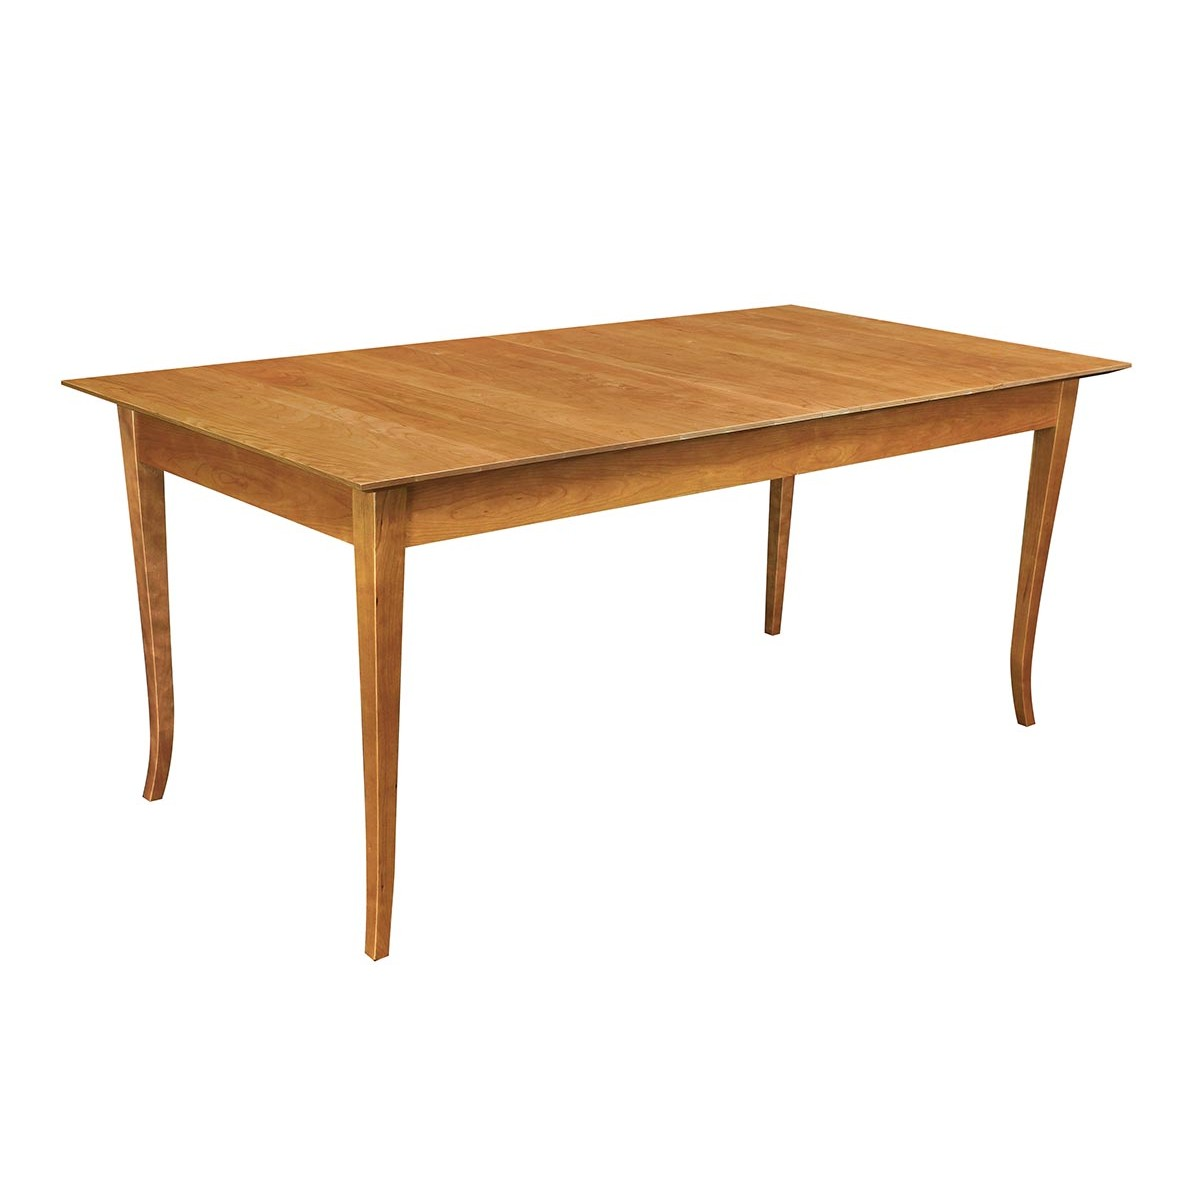 Lyndon Butterfly 3660 Extension Table From 2 065 00 By